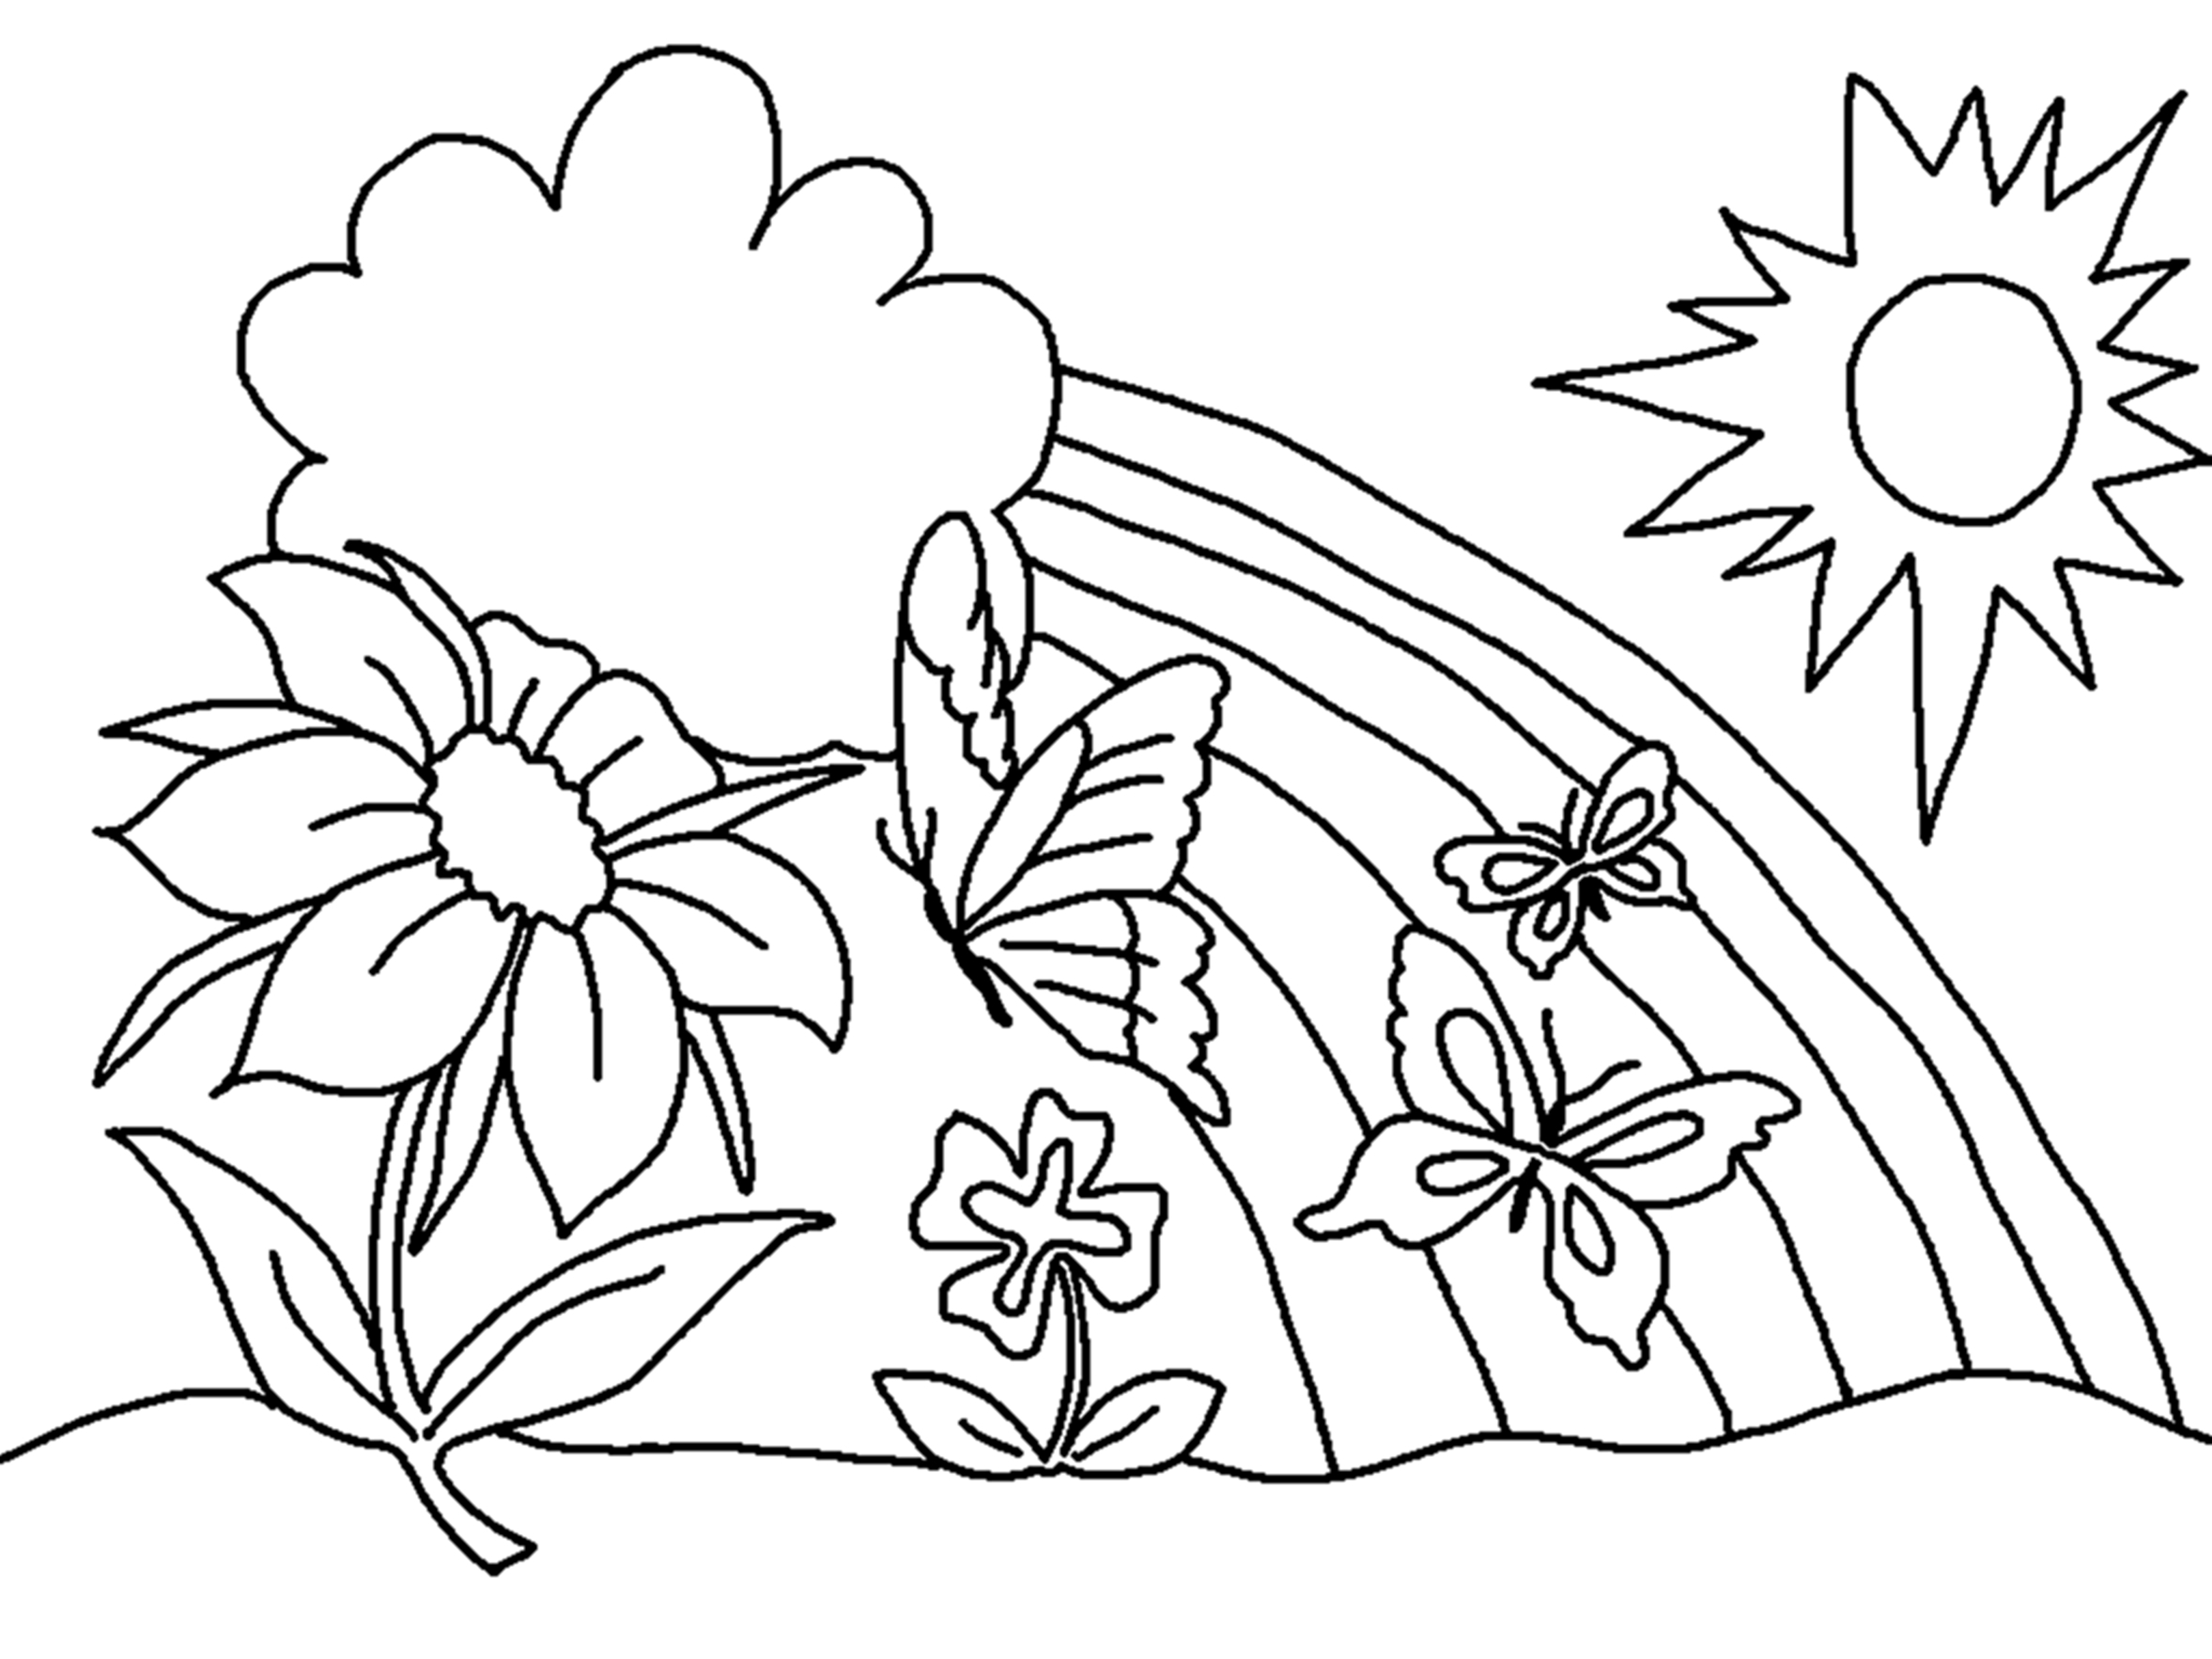 flower coloring pages for kids free printable flower coloring pages for kids best for kids coloring flower pages